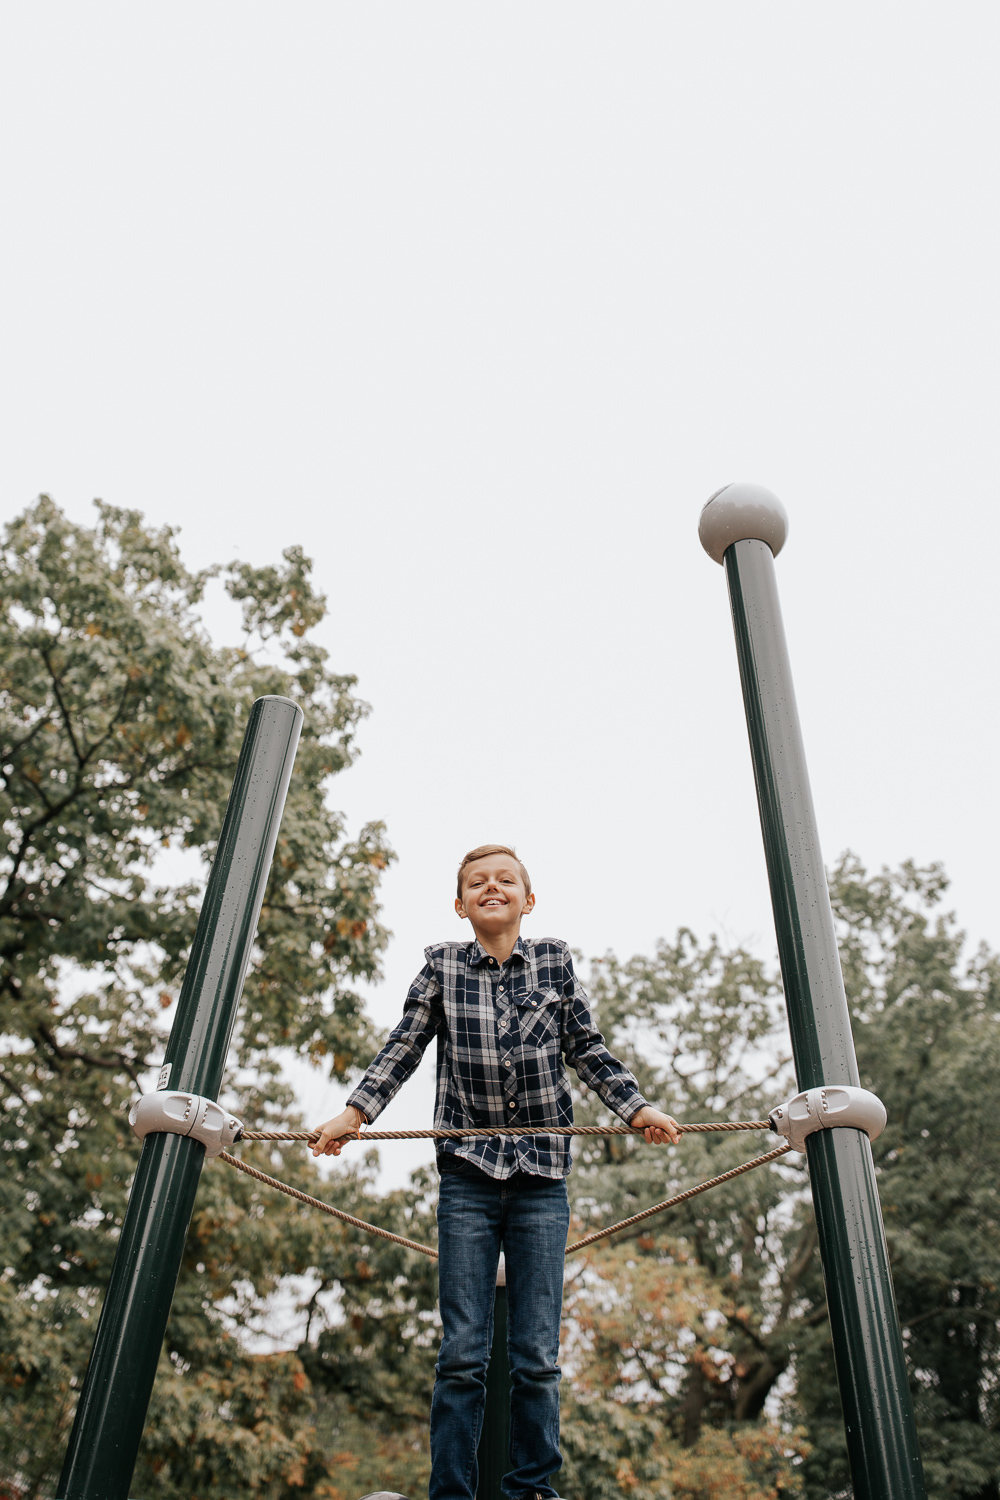 9 year old boy in plaid shirt with light brown hair standing on top of jungle gym at park and smiling down at camera - GTA Lifestyle Photos